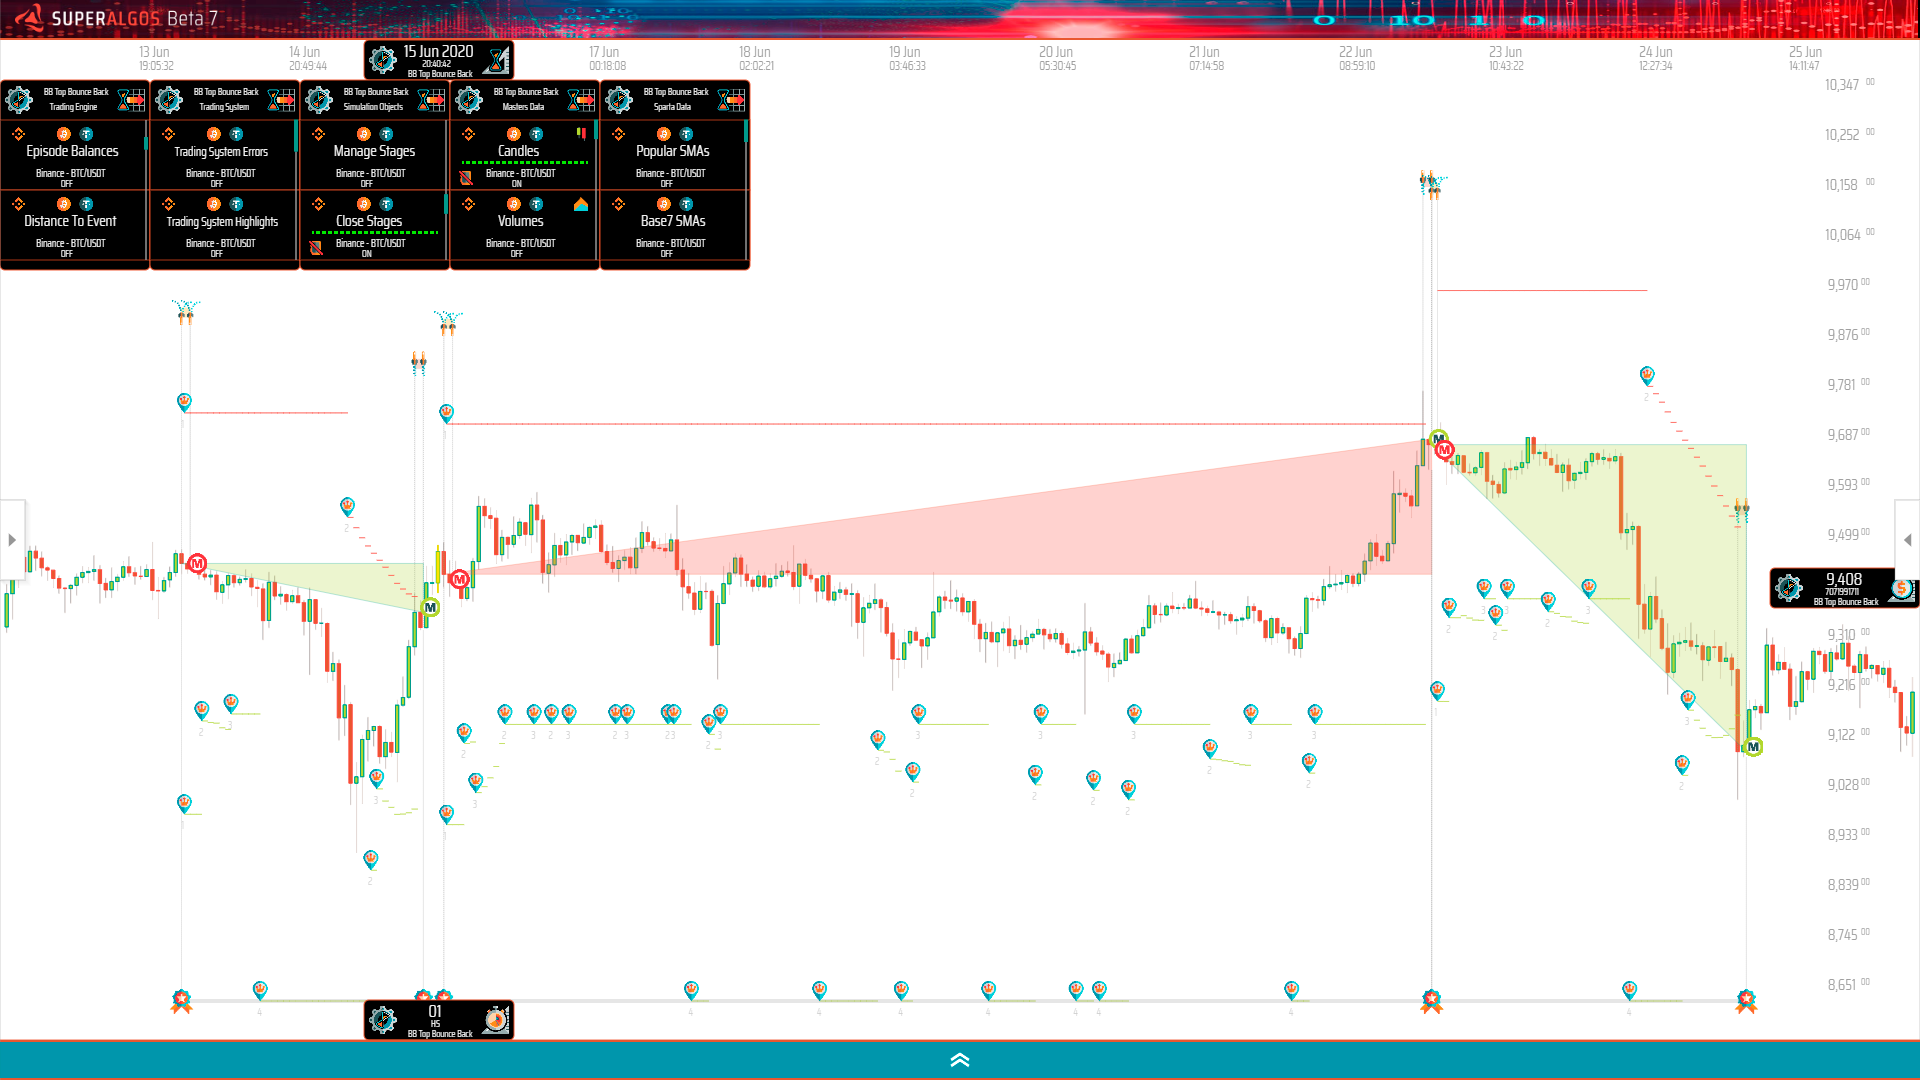 graph showing entry and exit events, dynamic take profit, and stop loss targets for 3 consecutive simulated positions